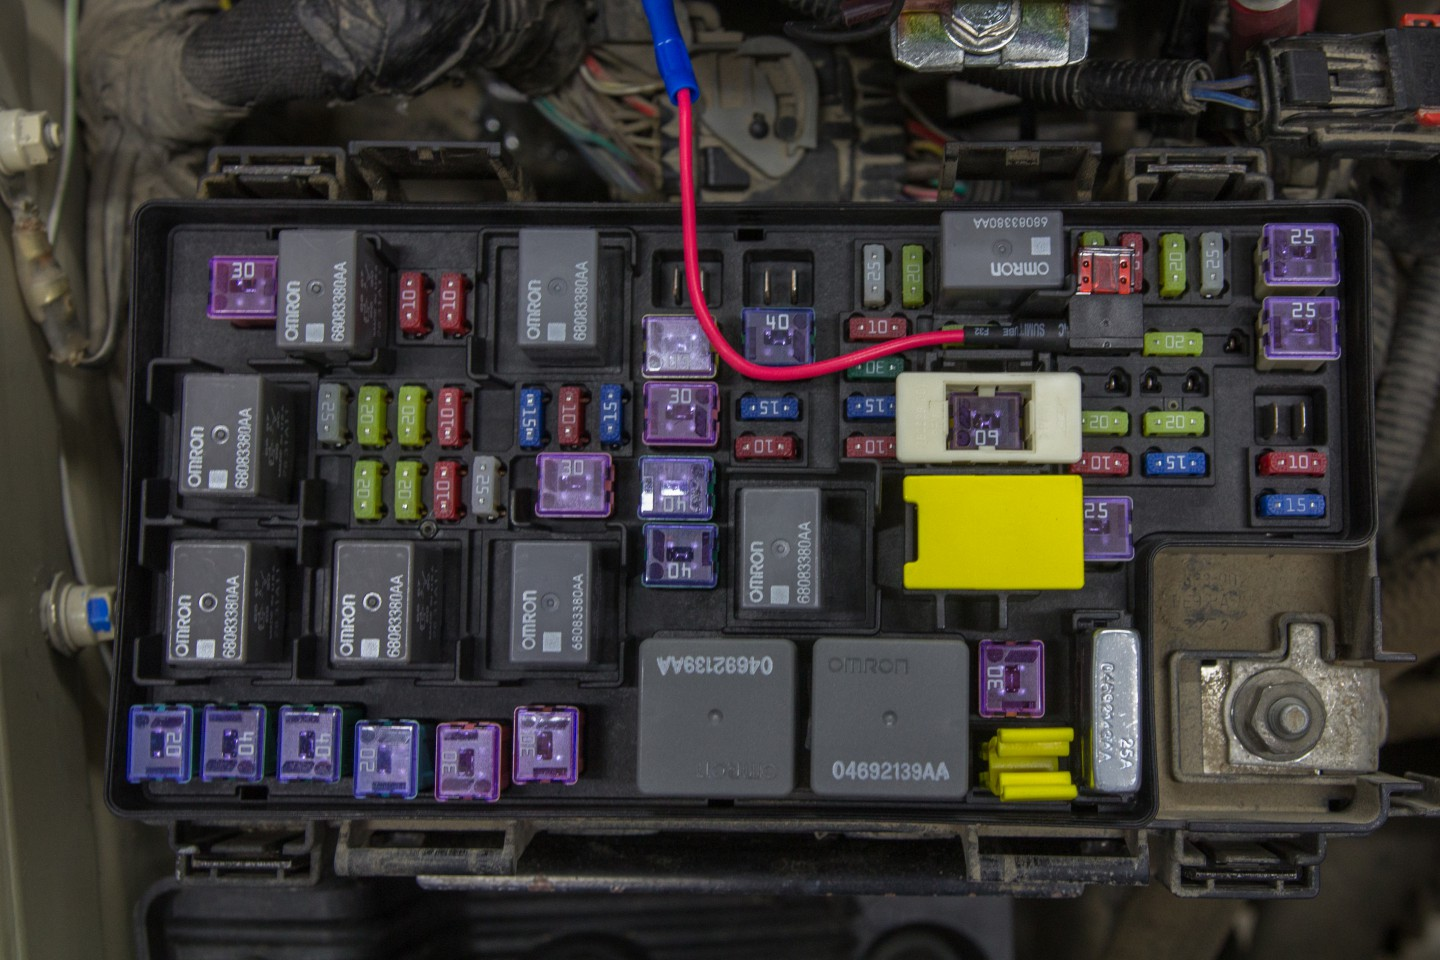 Diy Jeep Wrangler Jk Isolated Dual Batteries The Road Chose Me 2010 Jeep  Wrangler Fuse Box Diagram 2007 Jeep Wrangler Fuse Box Diagram